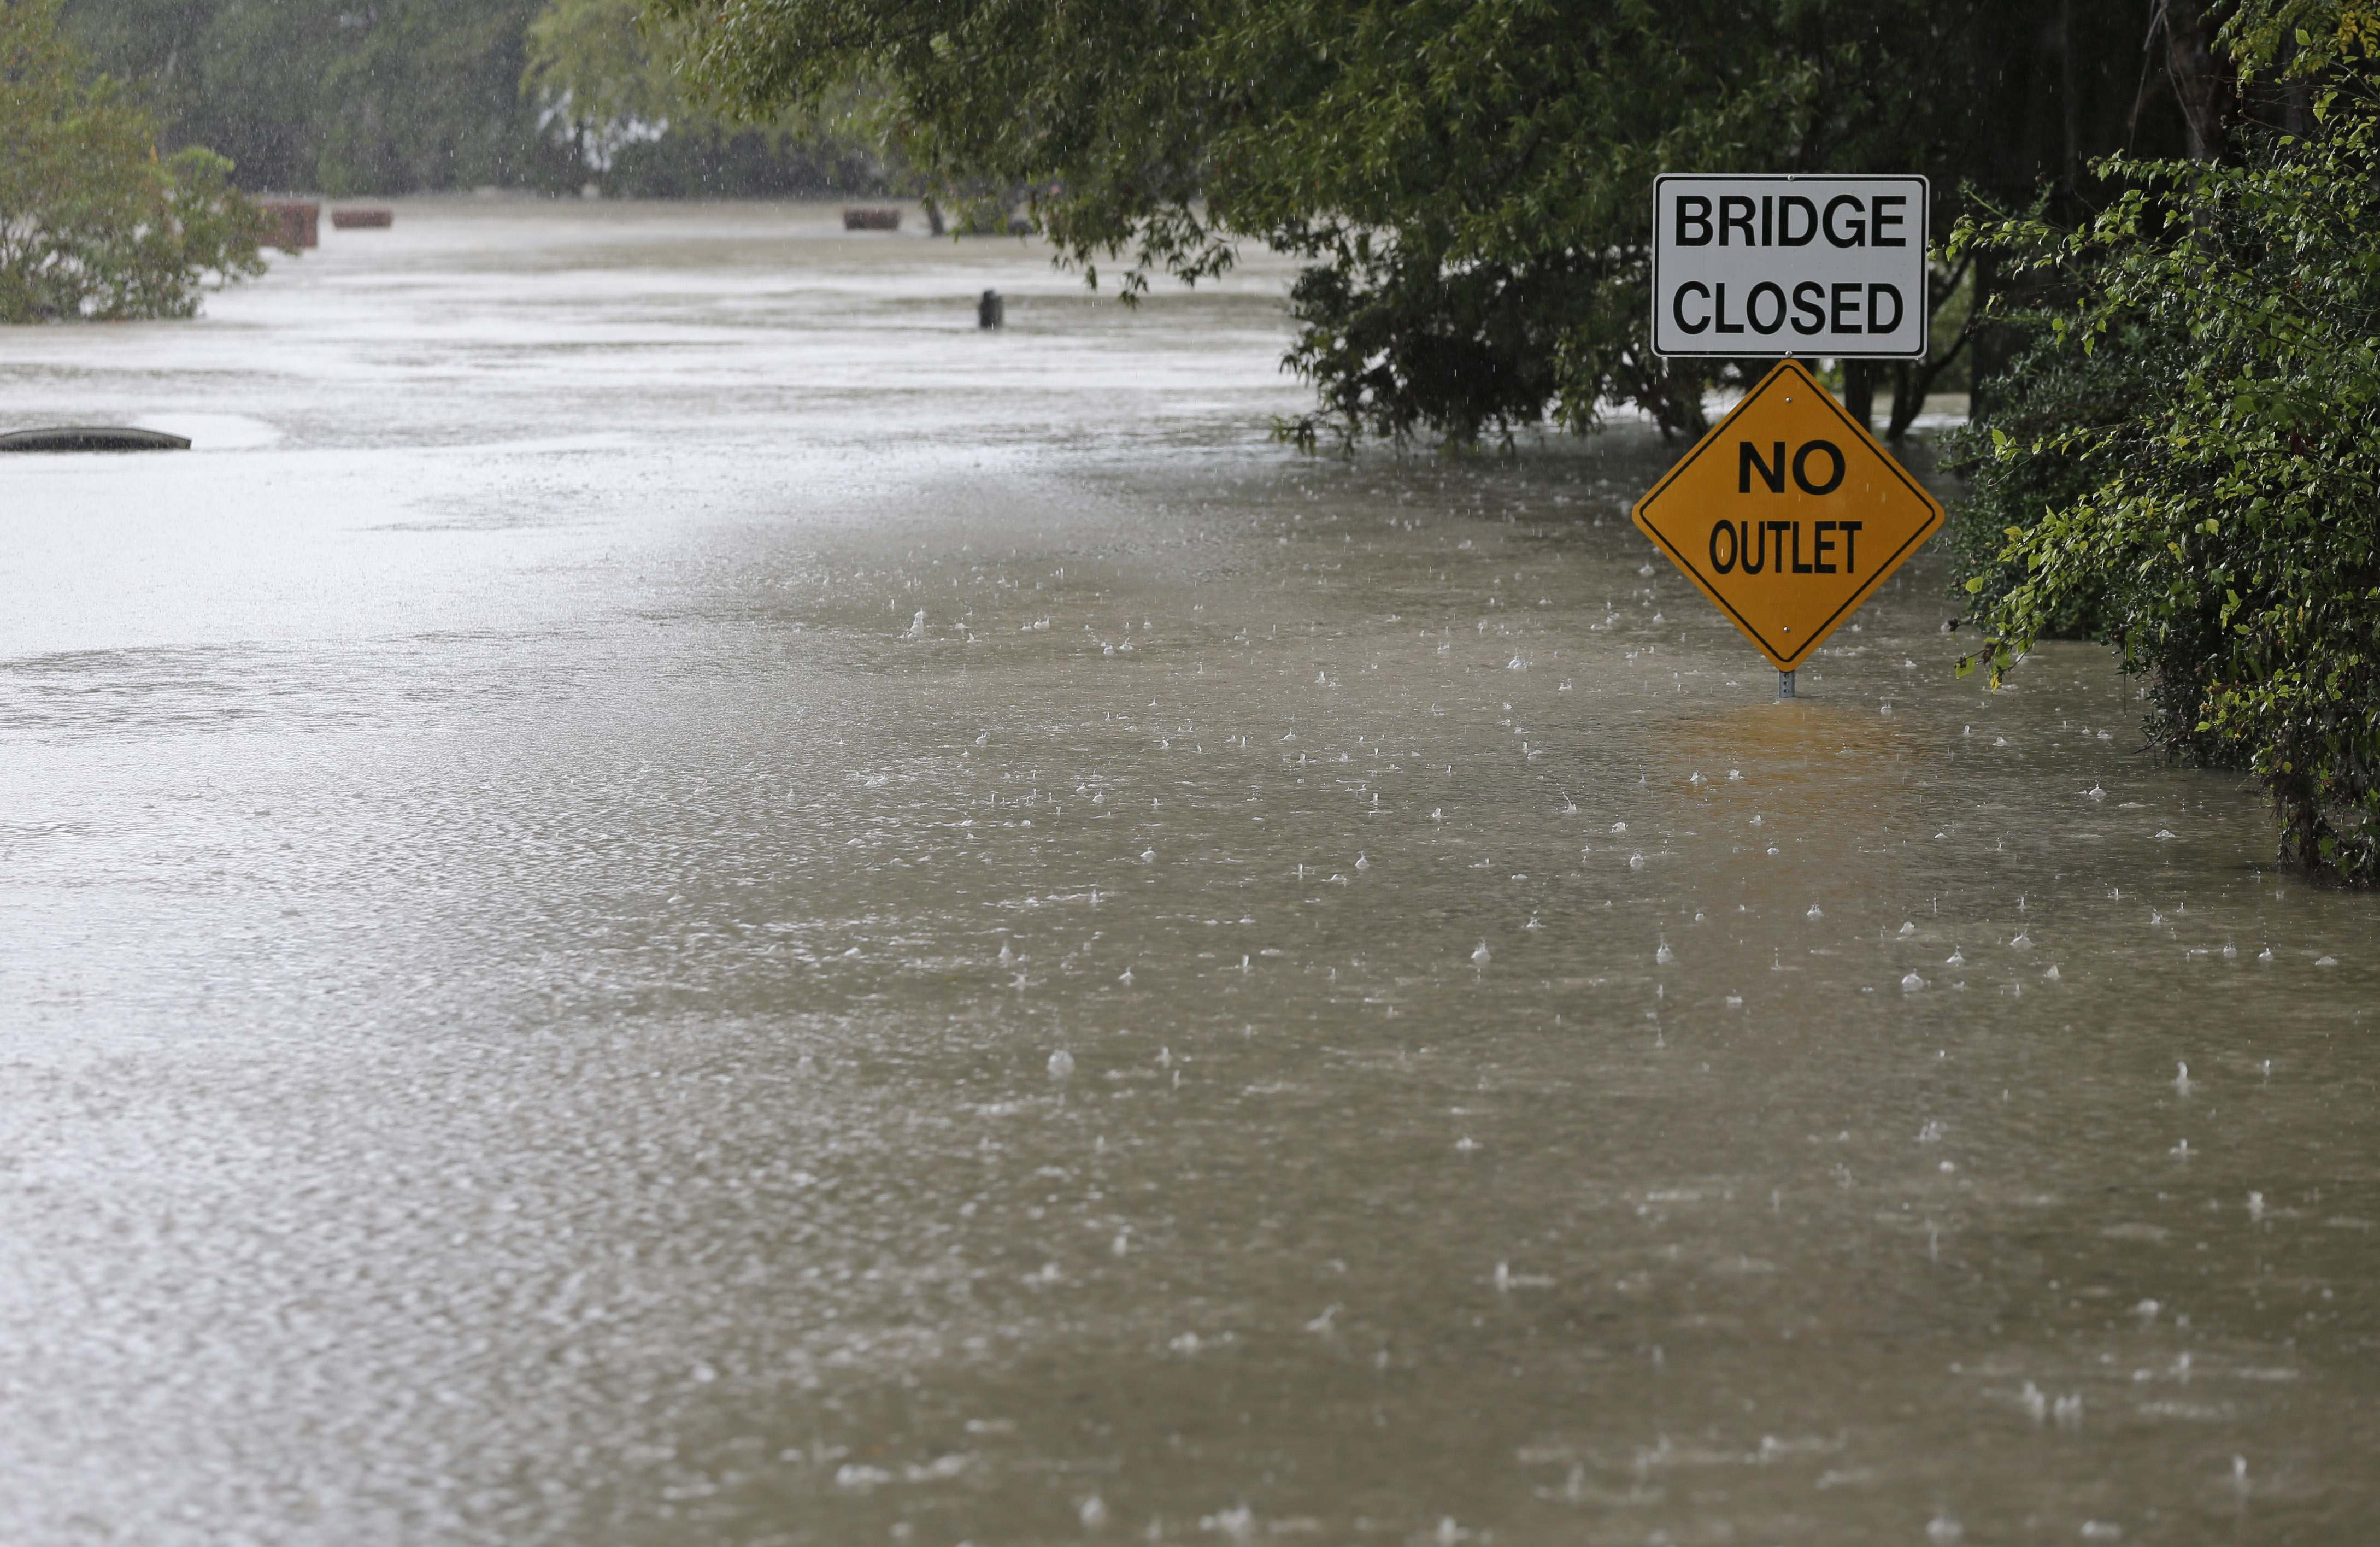 Floodwaters cover a road in Columbia, S.C., Sunday, Oct. 4, 2015.